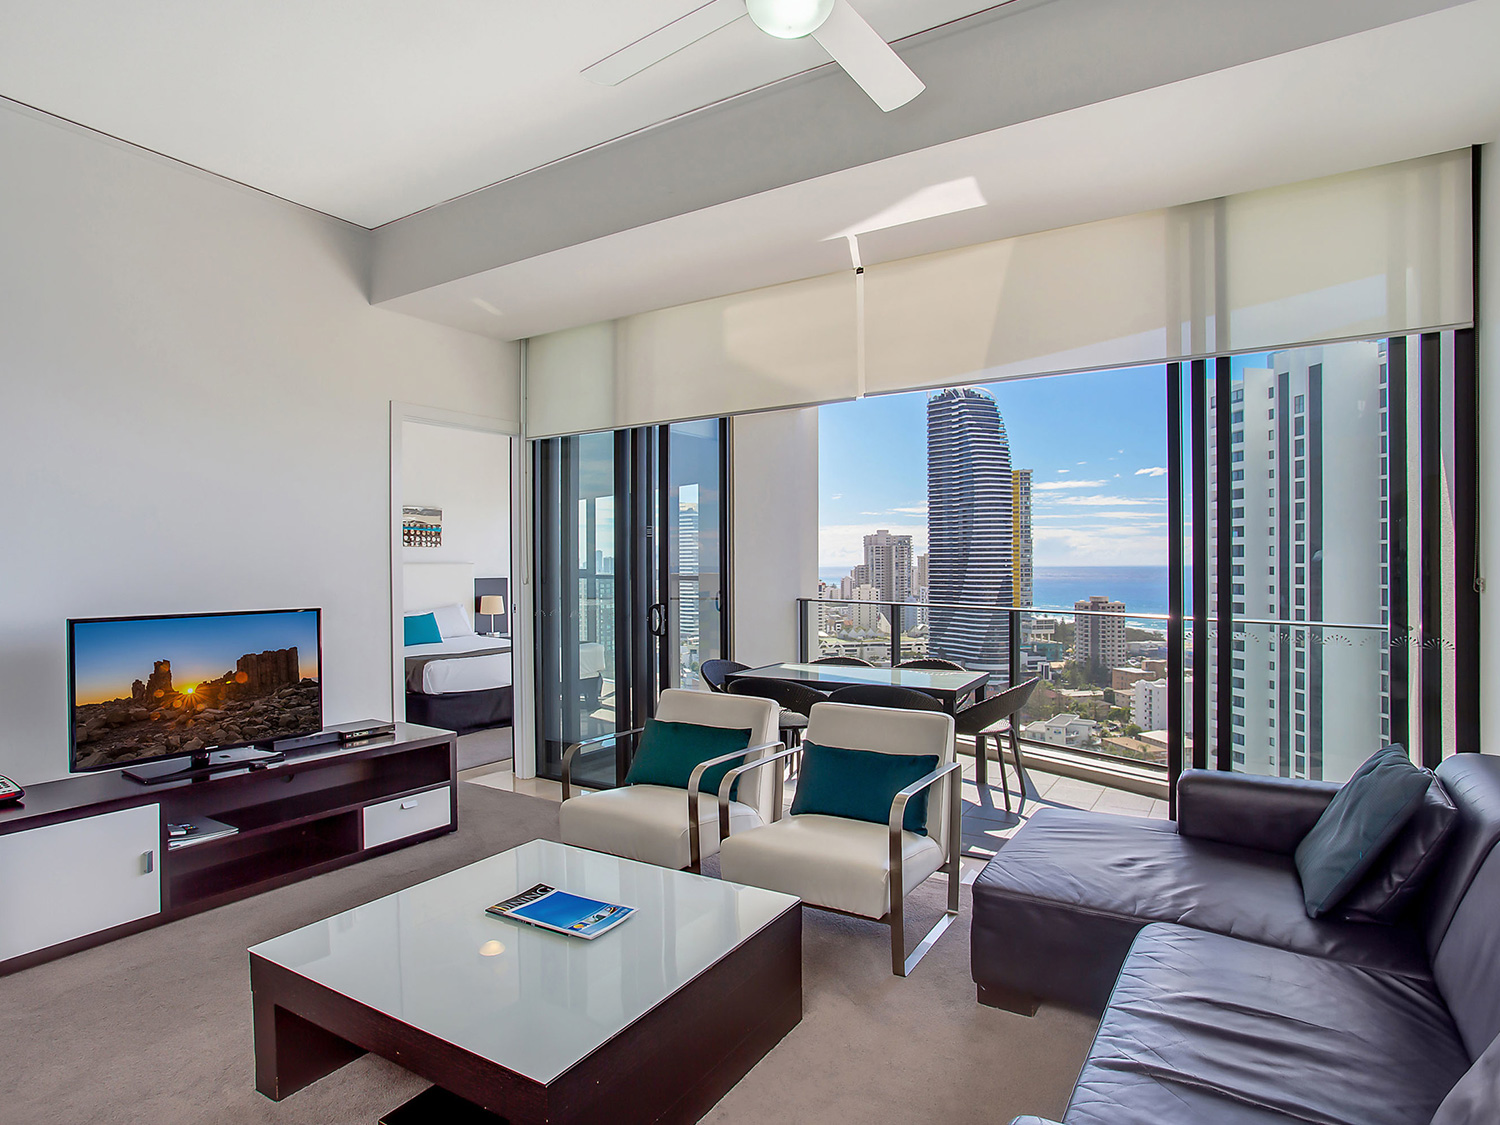 Mantra Sierra Grand, Broadbeach: See 1, traveller reviews, candid photos, and great deals for Mantra Sierra Grand, ranked #20 of 51 Speciality lodging in Broadbeach and rated 4 of 5 at TripAdvisor.4/4(K).